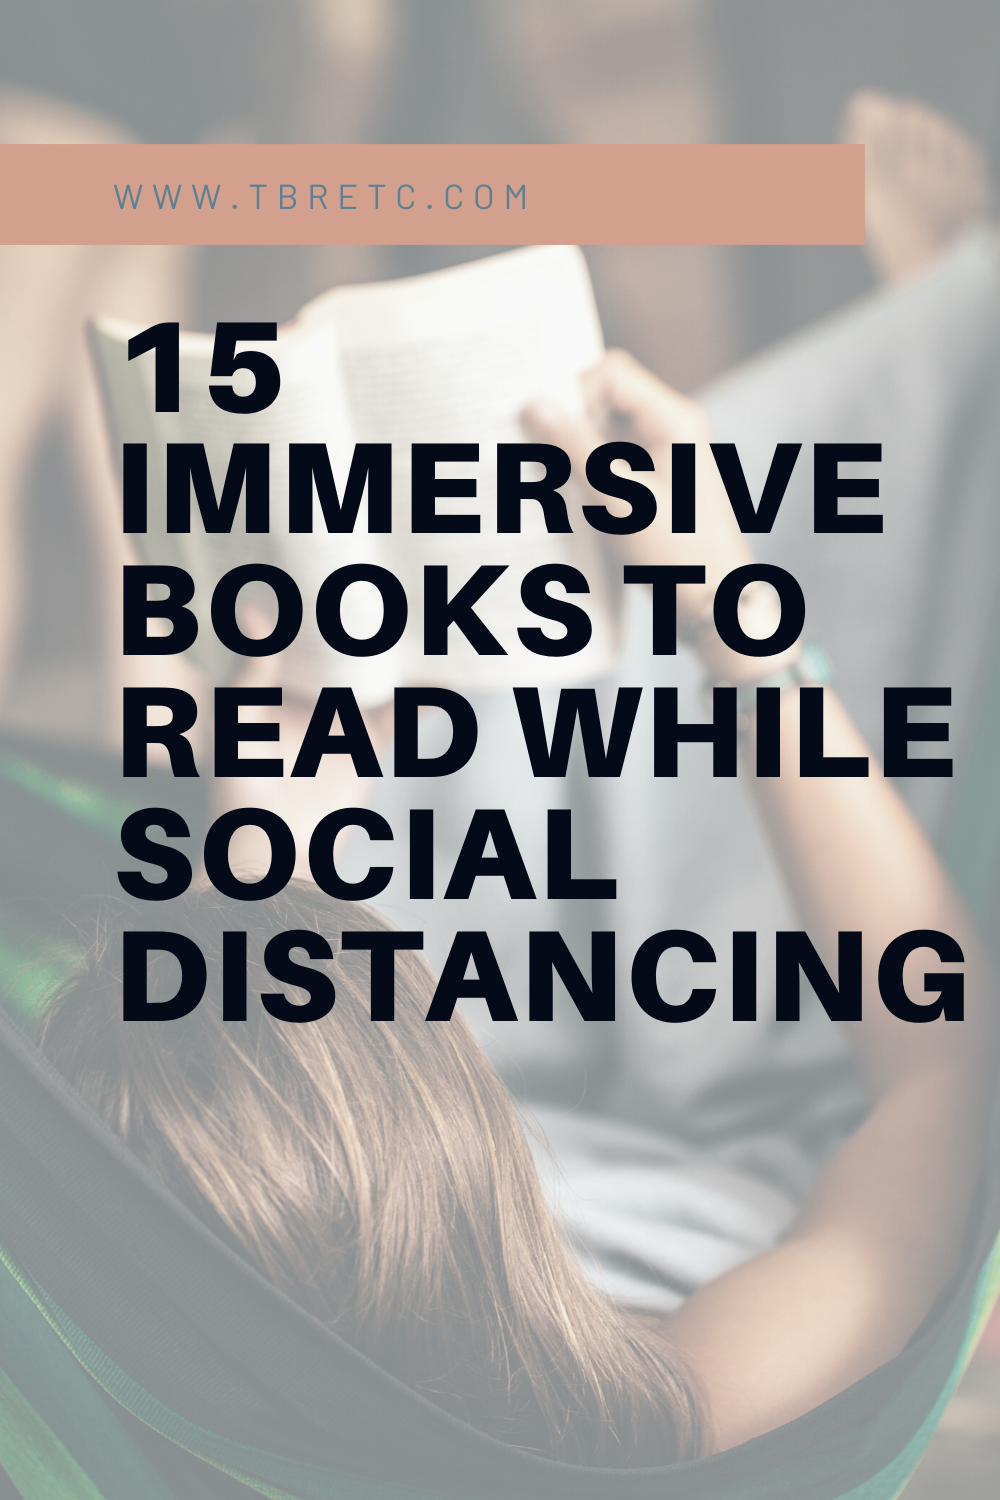 15 Immersive Books to Read While Social Distancing — TBR, etc.